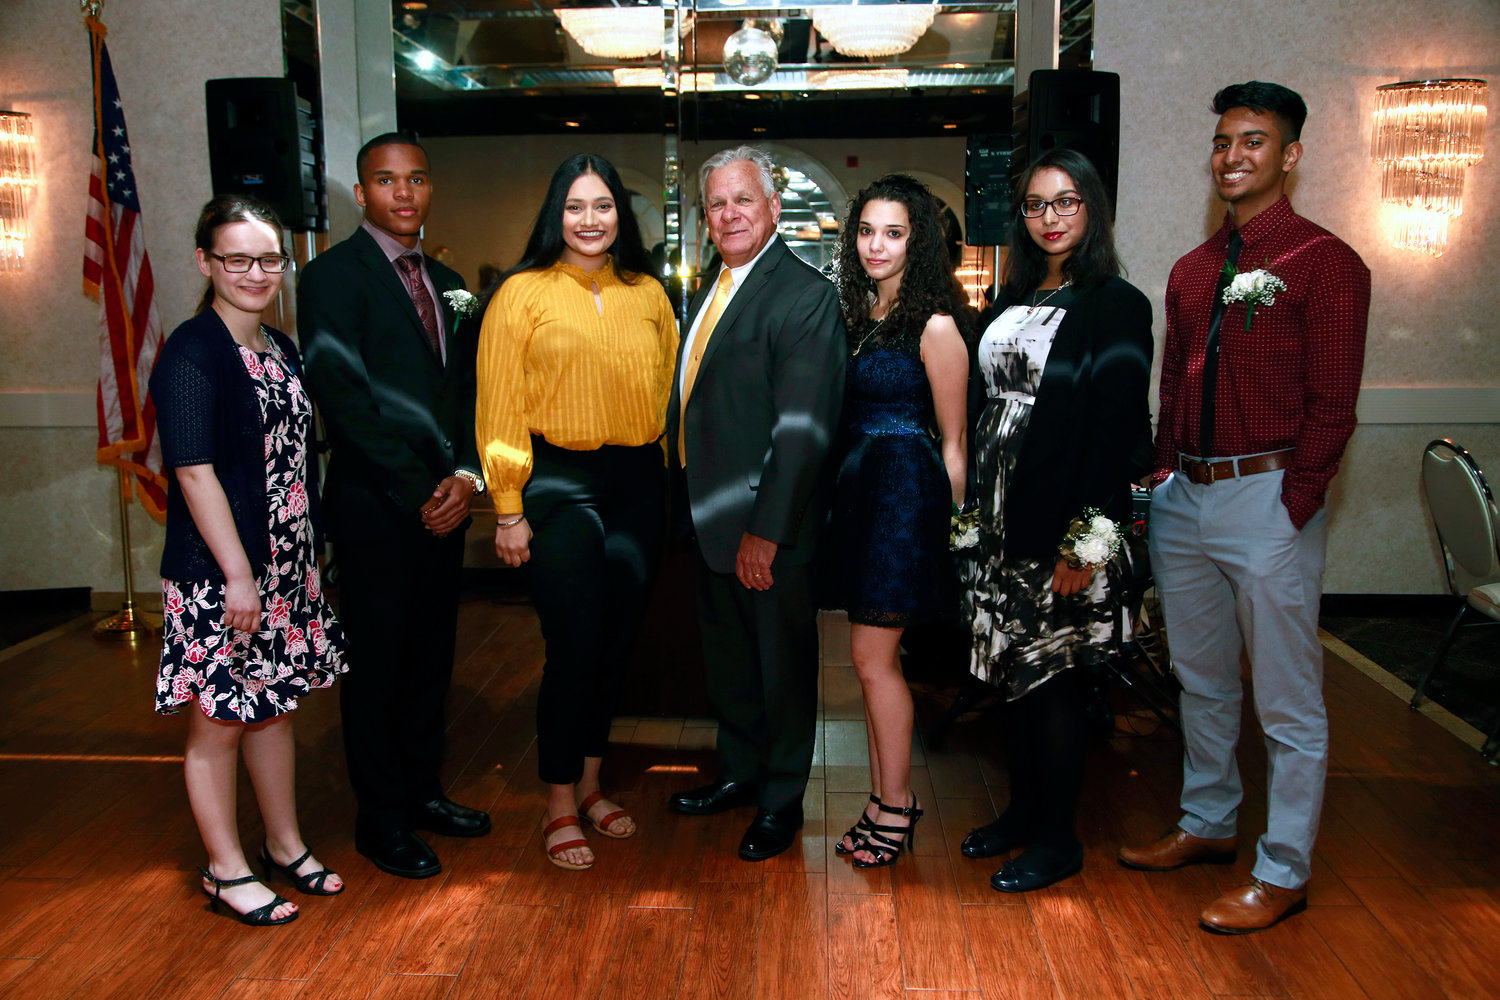 West Hempstead Community Scholarship Fund President Tom Kemnitzer, center, honored scholarship recipients Mary Penson, far left, Cameron Phillips, Harpinder Kaur, Aya Zubi, third from right, Somaia Saba and Neven Vaduthala on May 14.